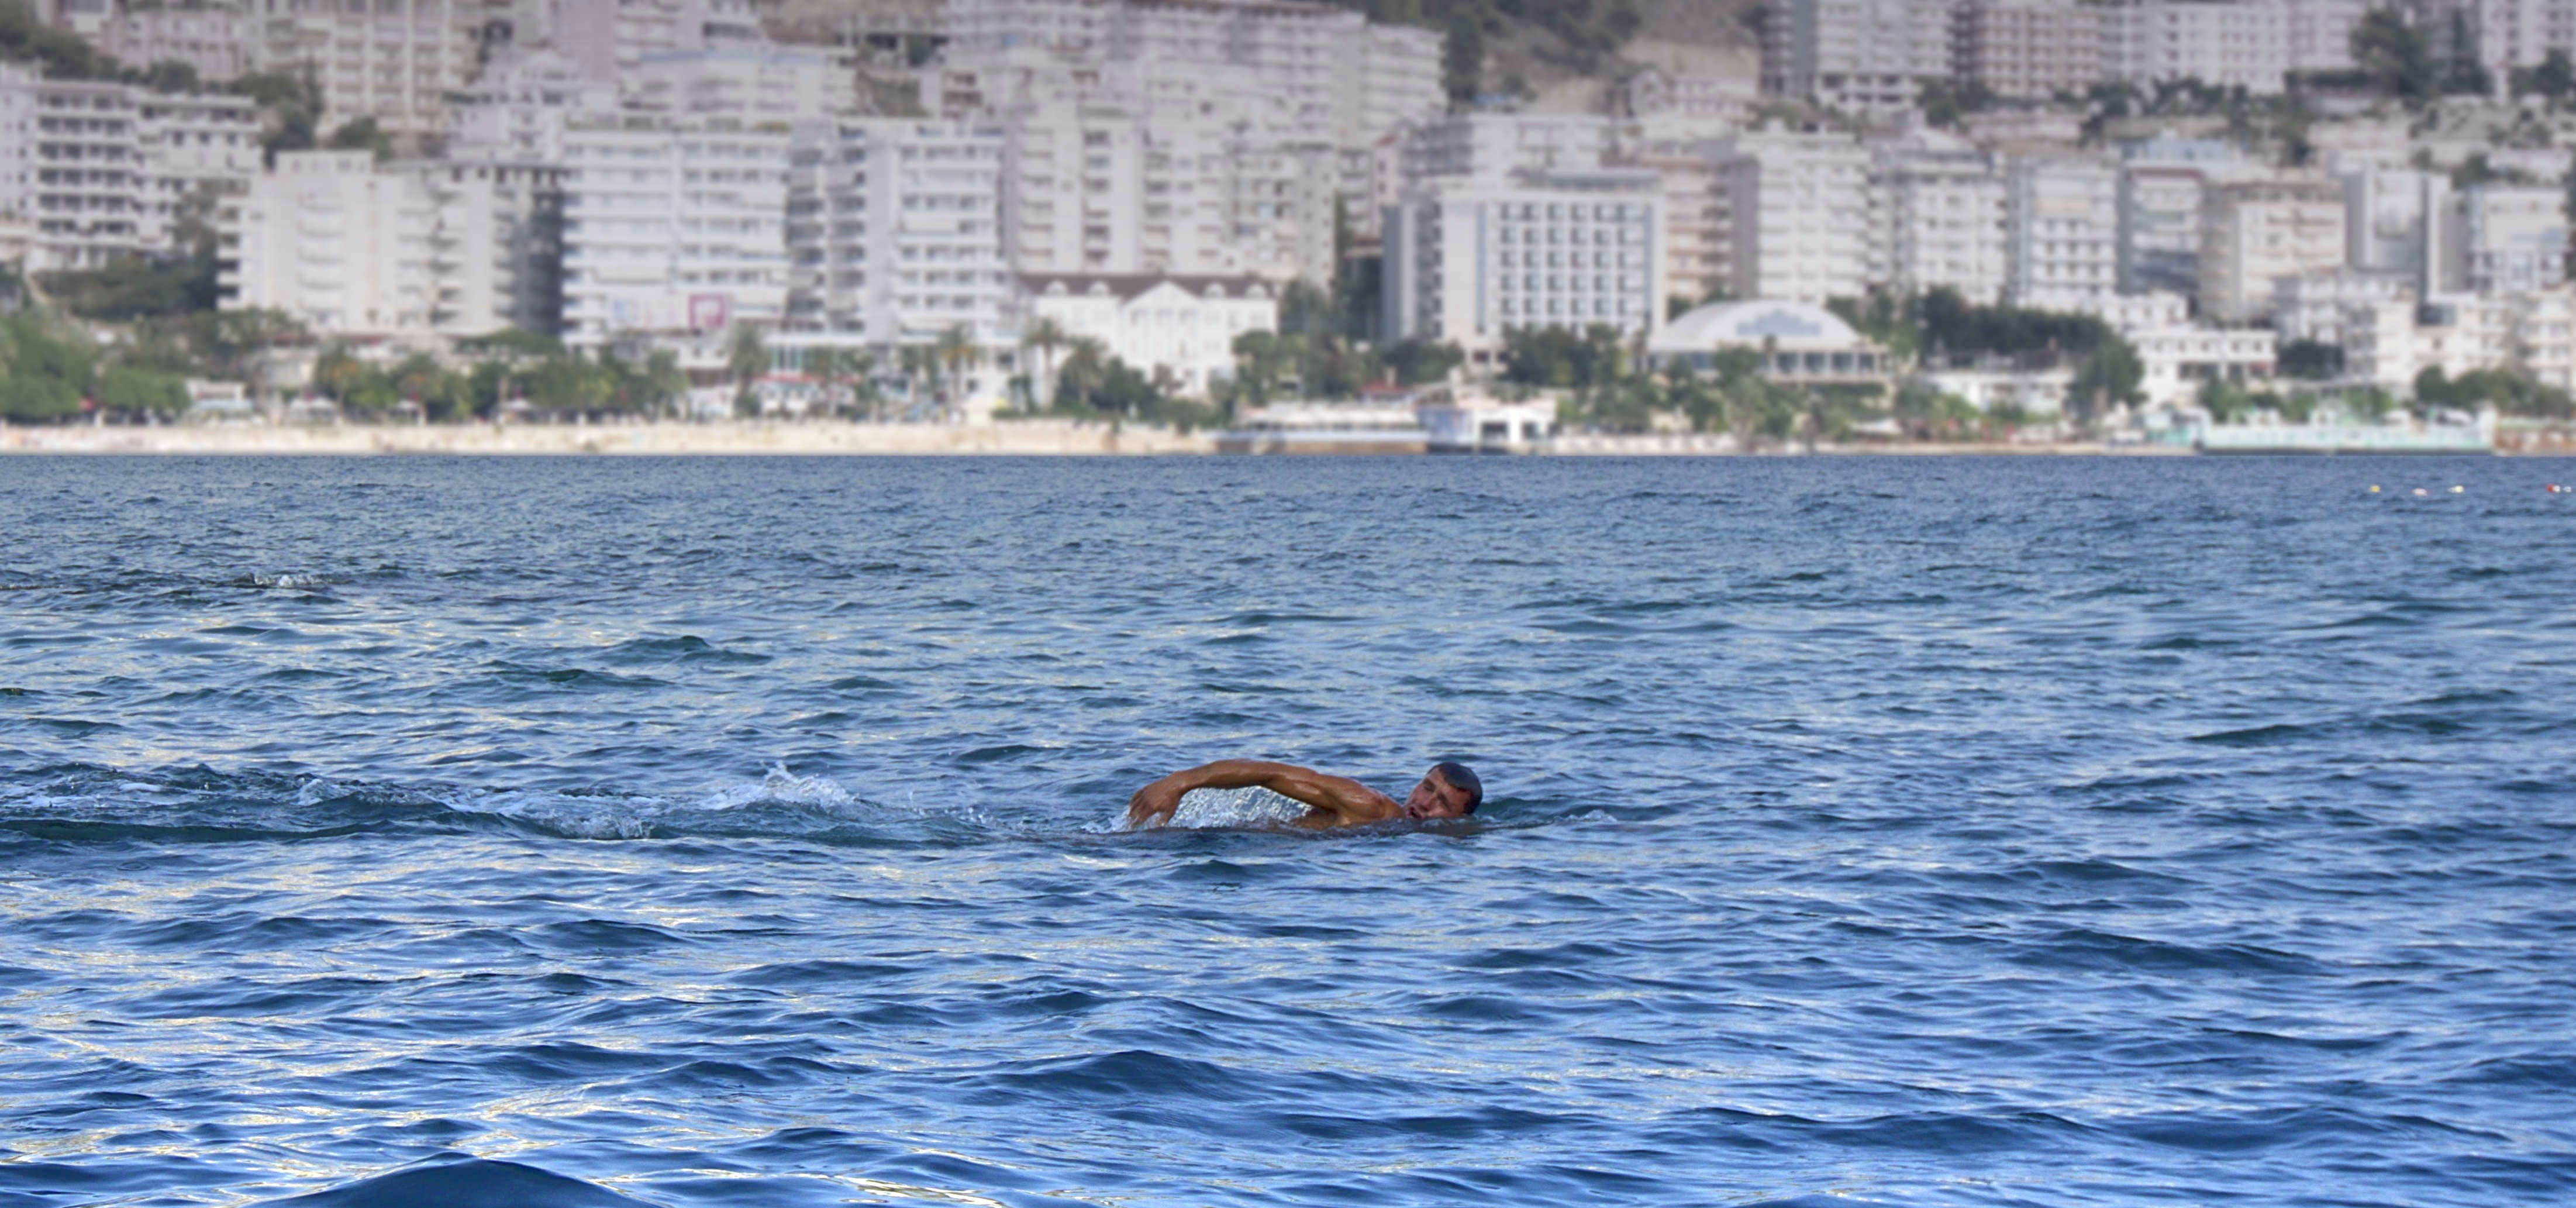 Man Swimming in a Body of Water White Concrete High Rise Building in Background